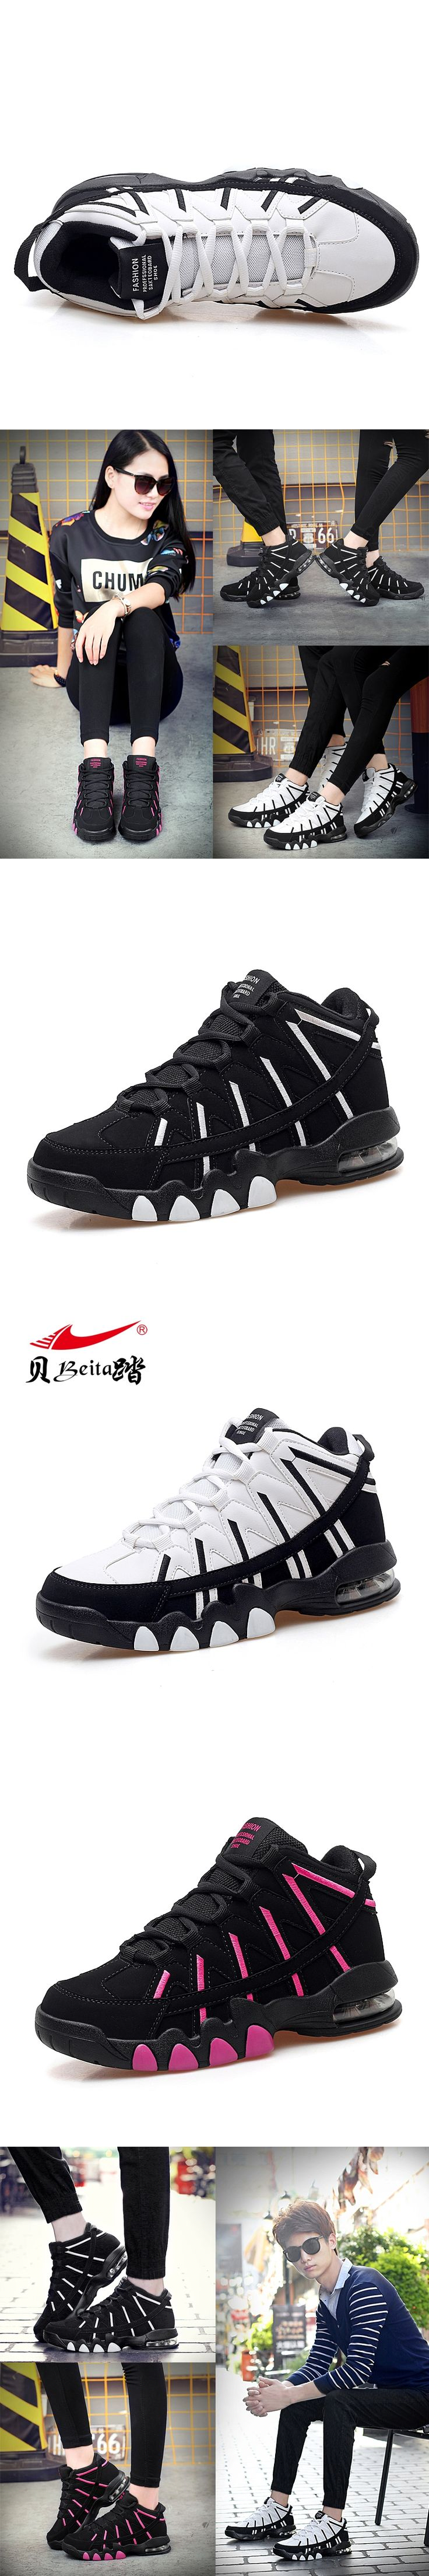 Beita 2017 Unisex Running Shoes Outdoor Jogging Training Men Keep Warm Winter Snow Shoes Sports Sneakers Running Plus size 45 46